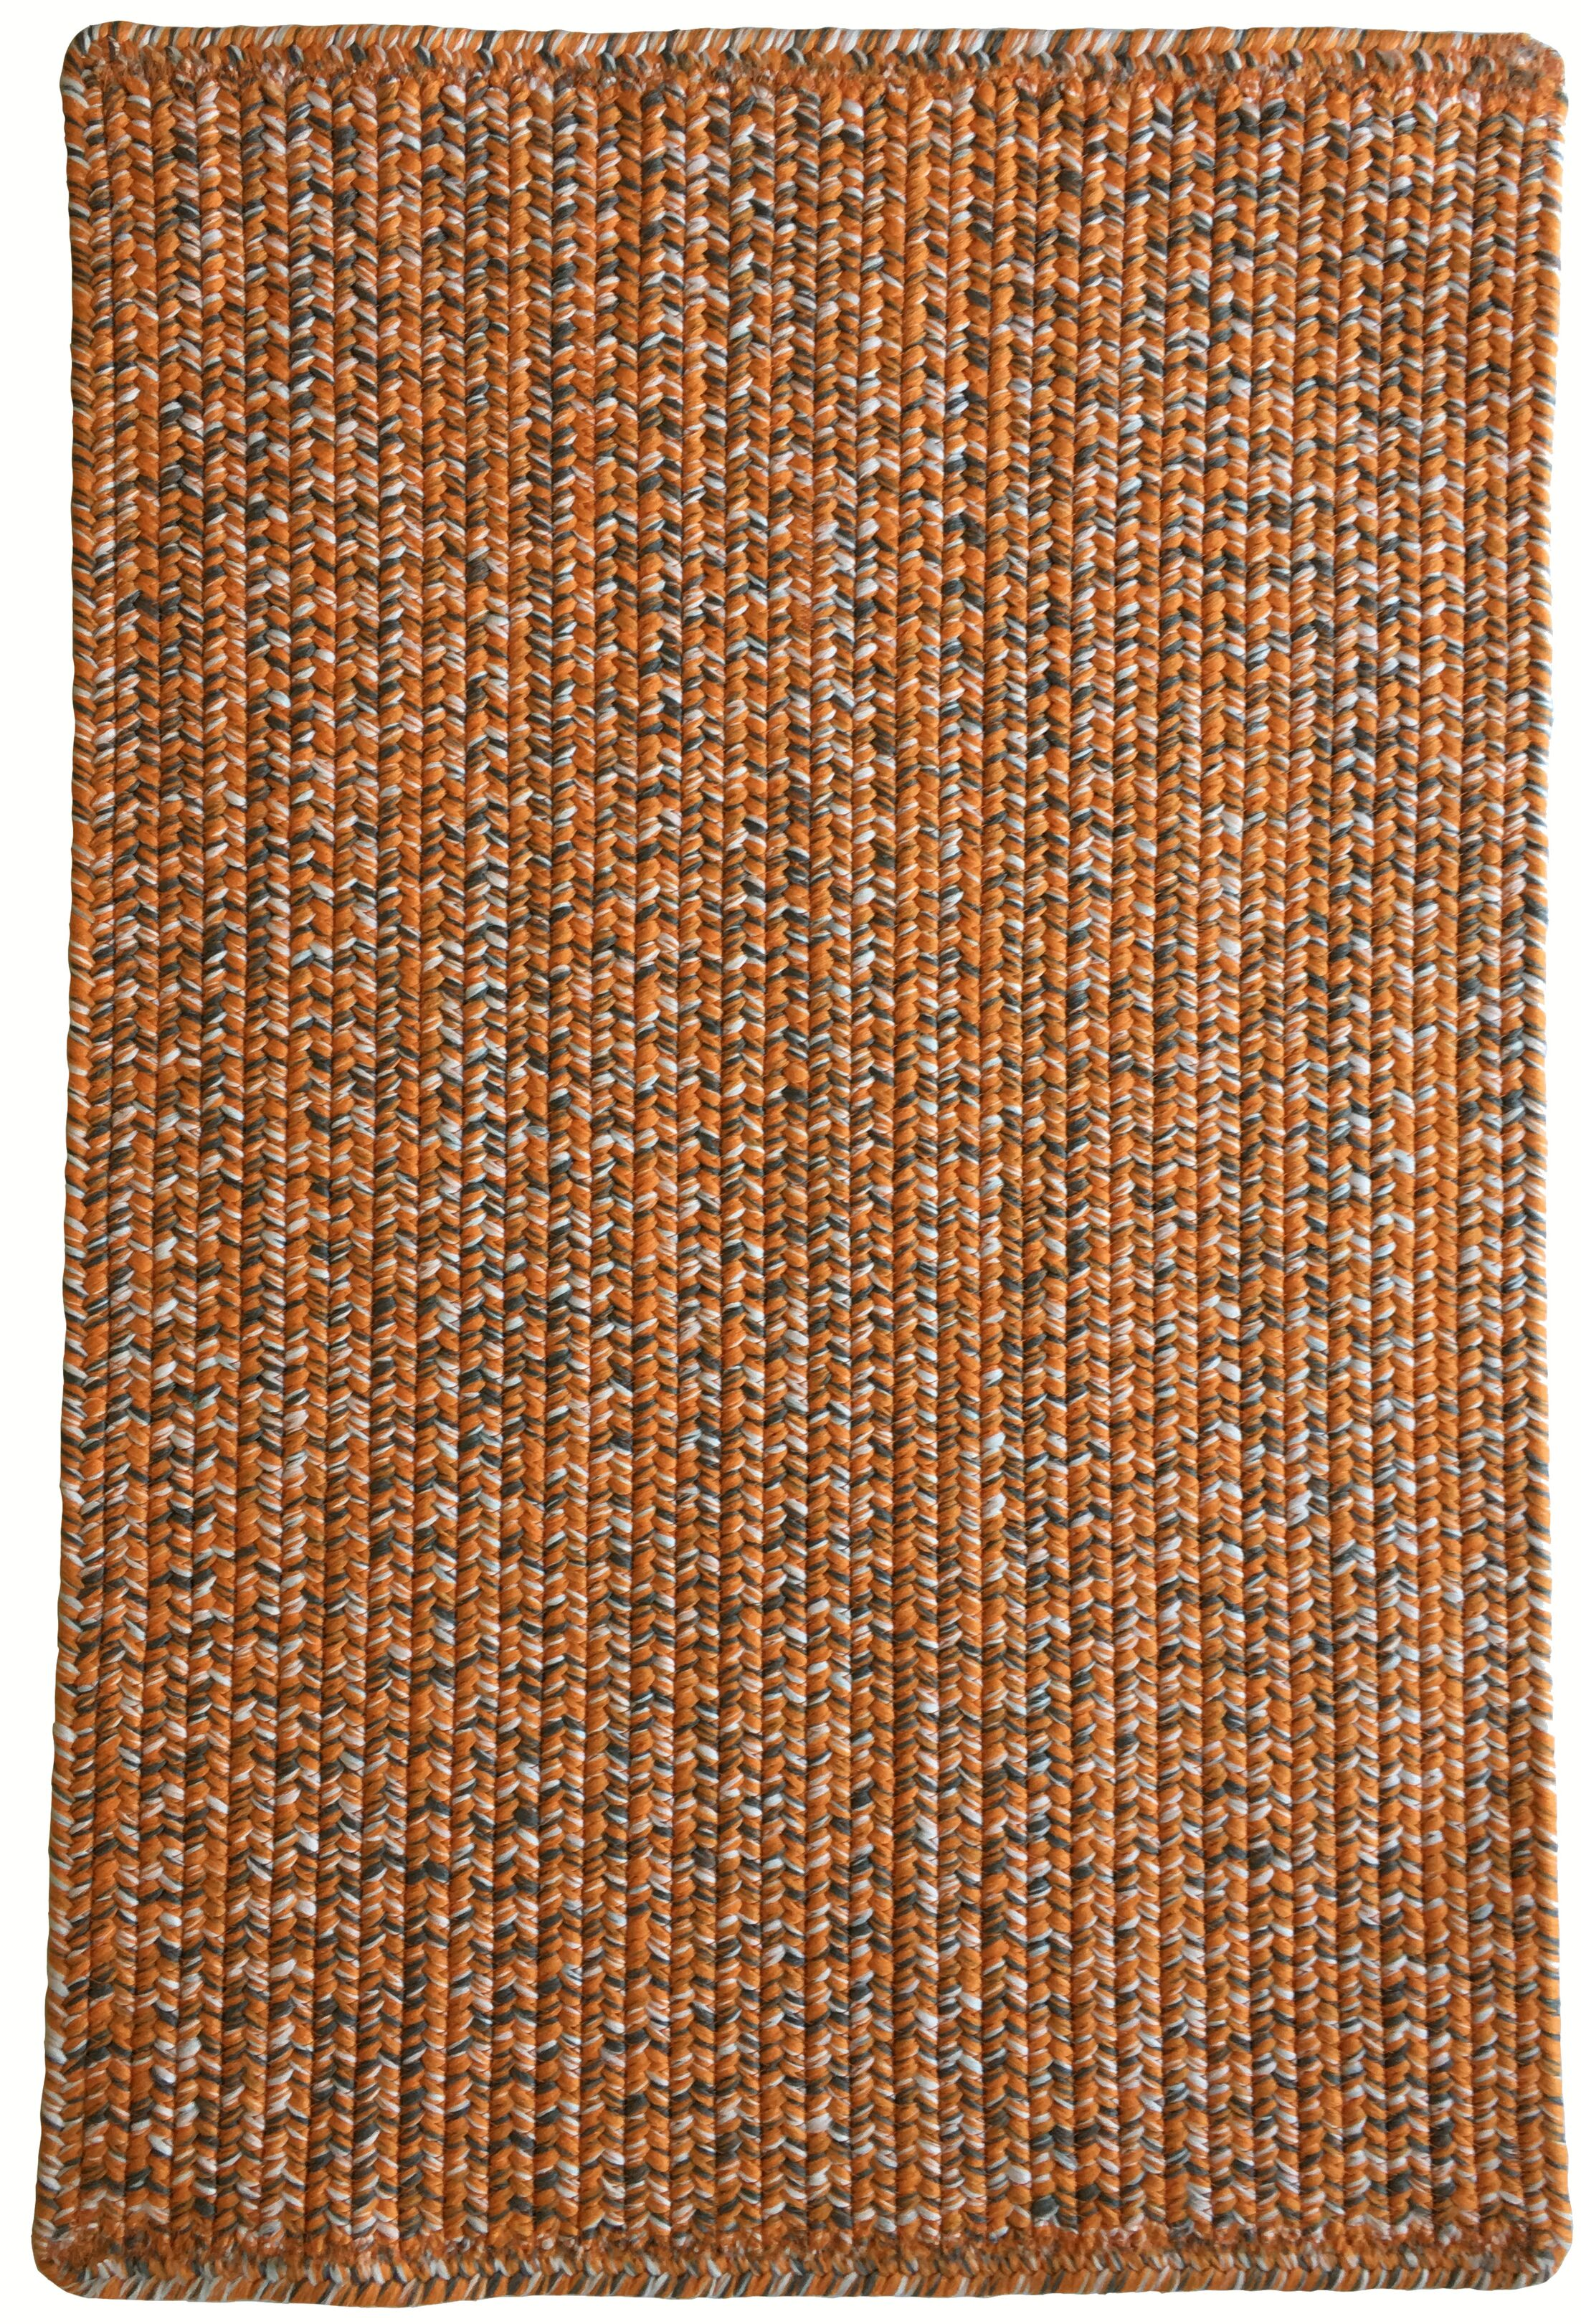 One-of-a-Kind Aukerman Hand-Braided Orange/Gray Indoor/Outdoor Area Rug Rug Size: Rectangle 7' x 9'